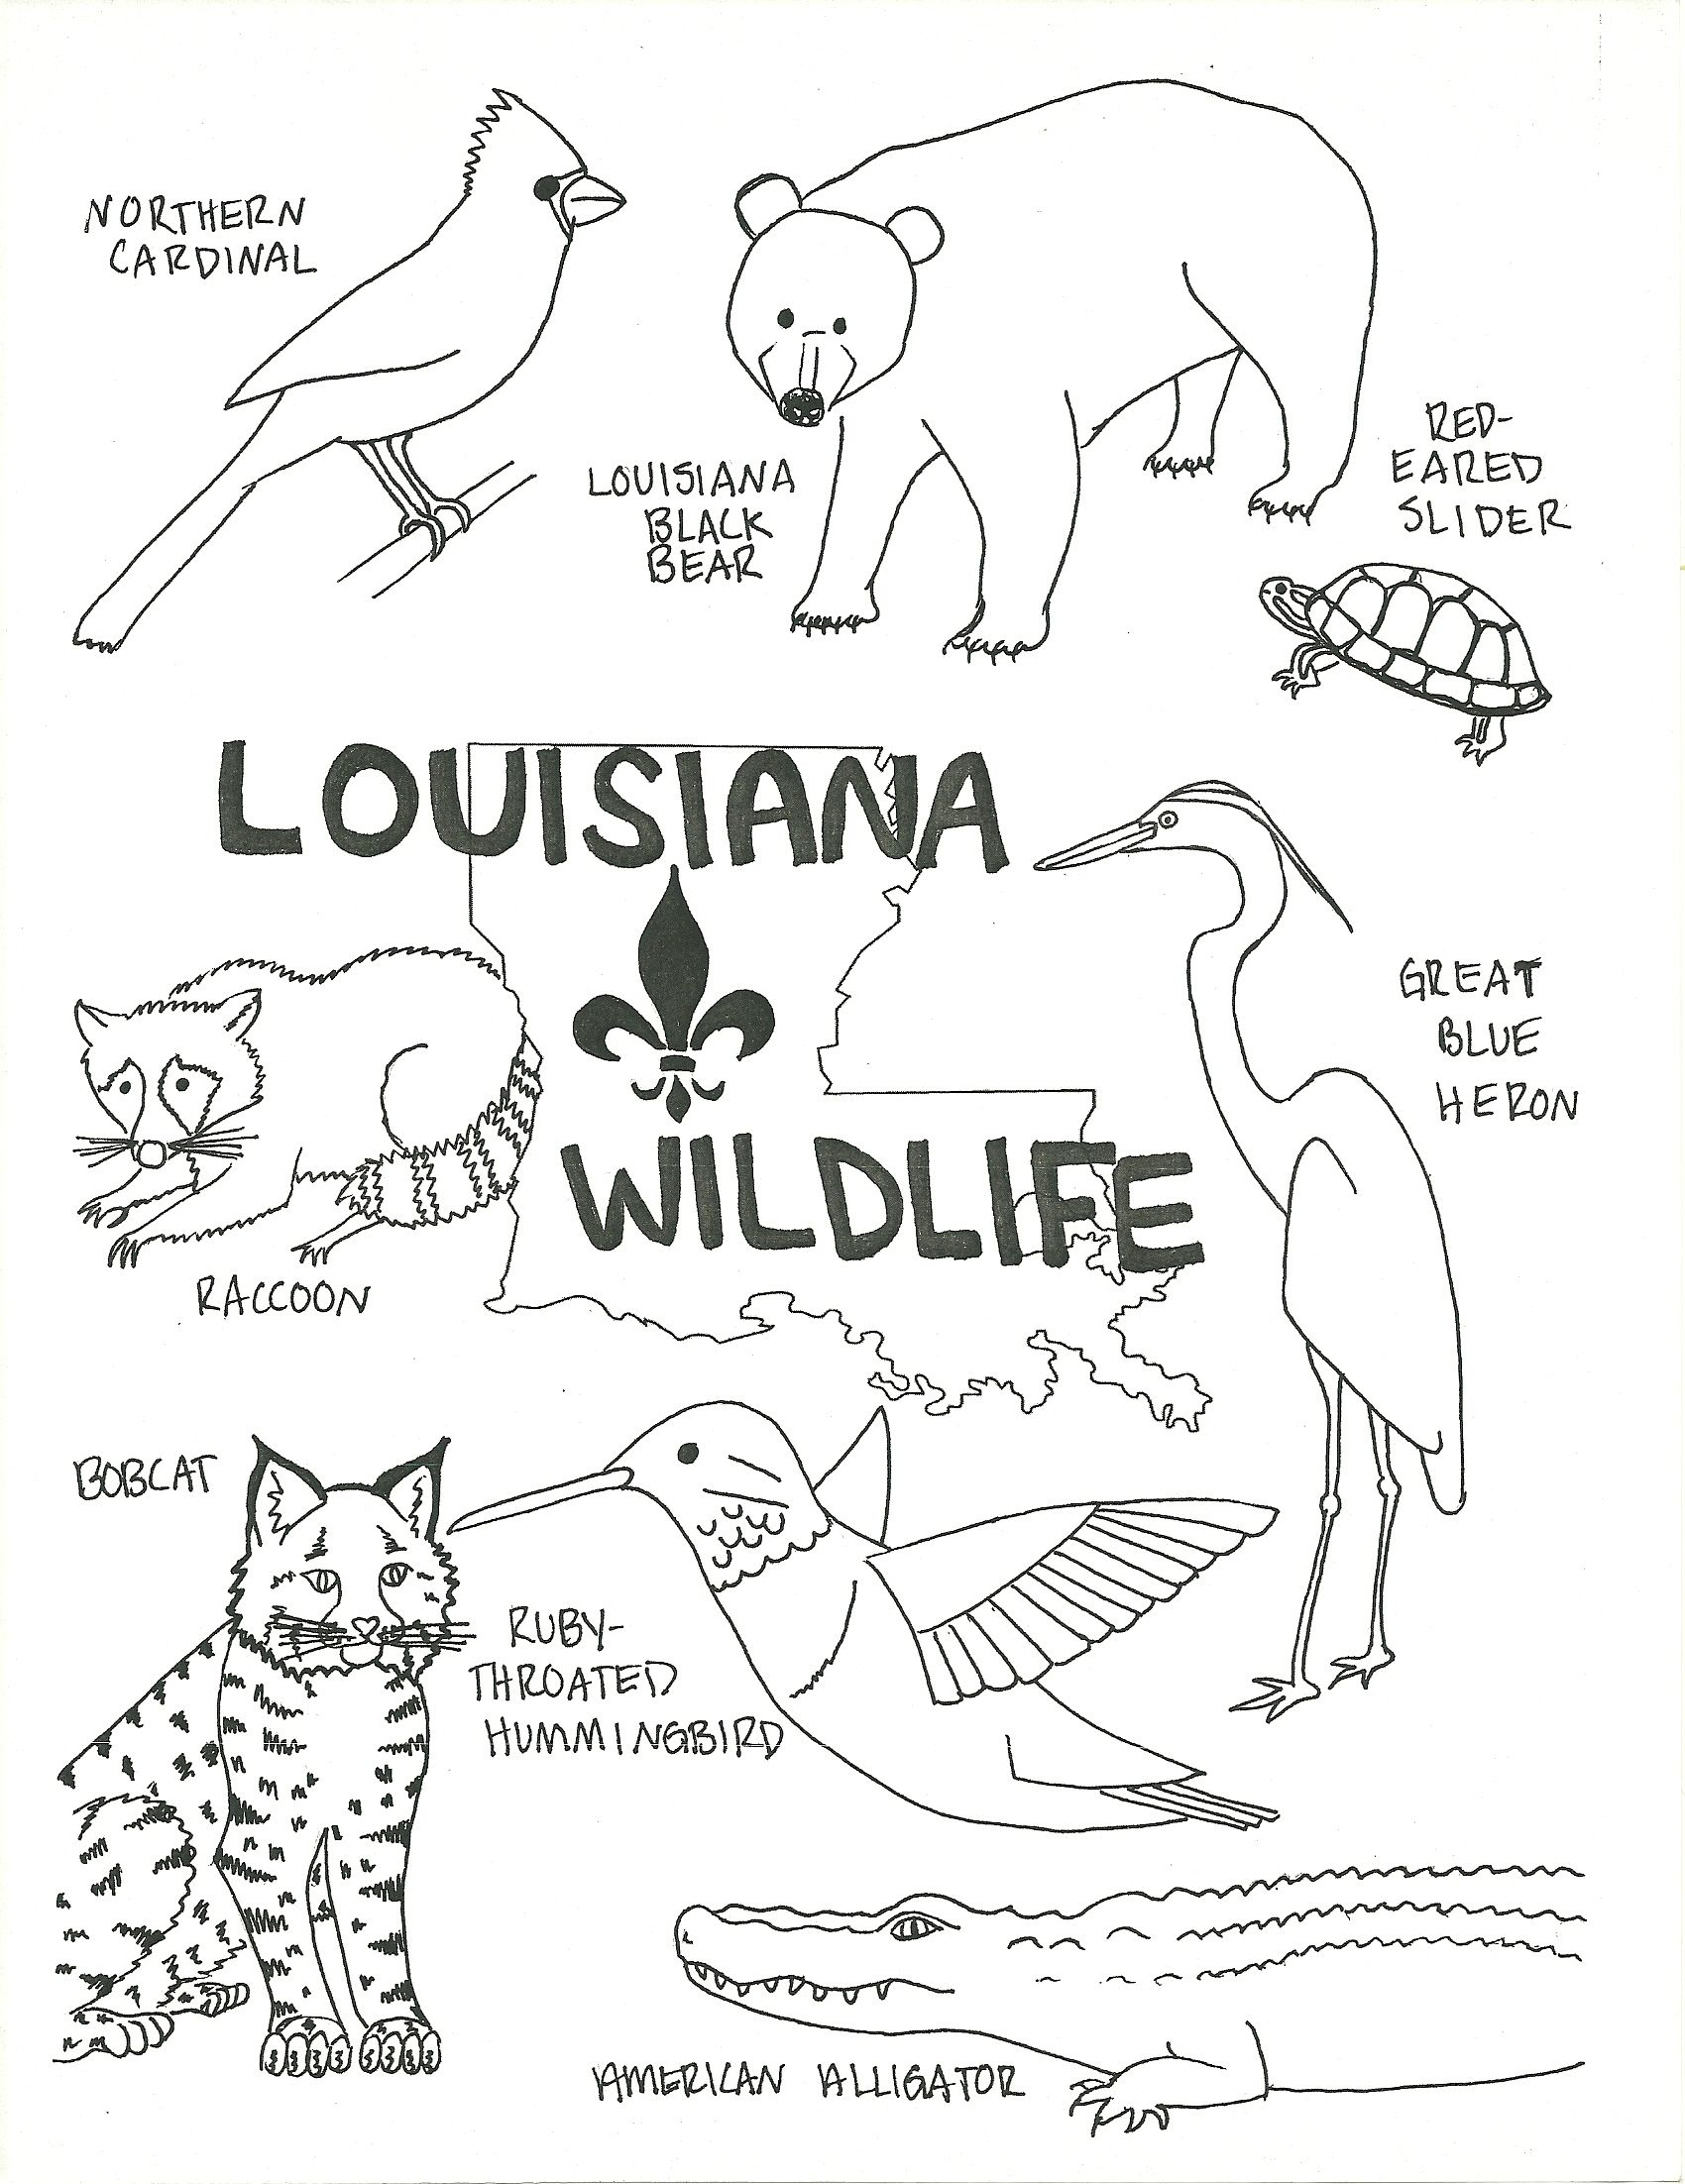 Louisiana Wildlife Coloring Page Coloring Pages Louisiana